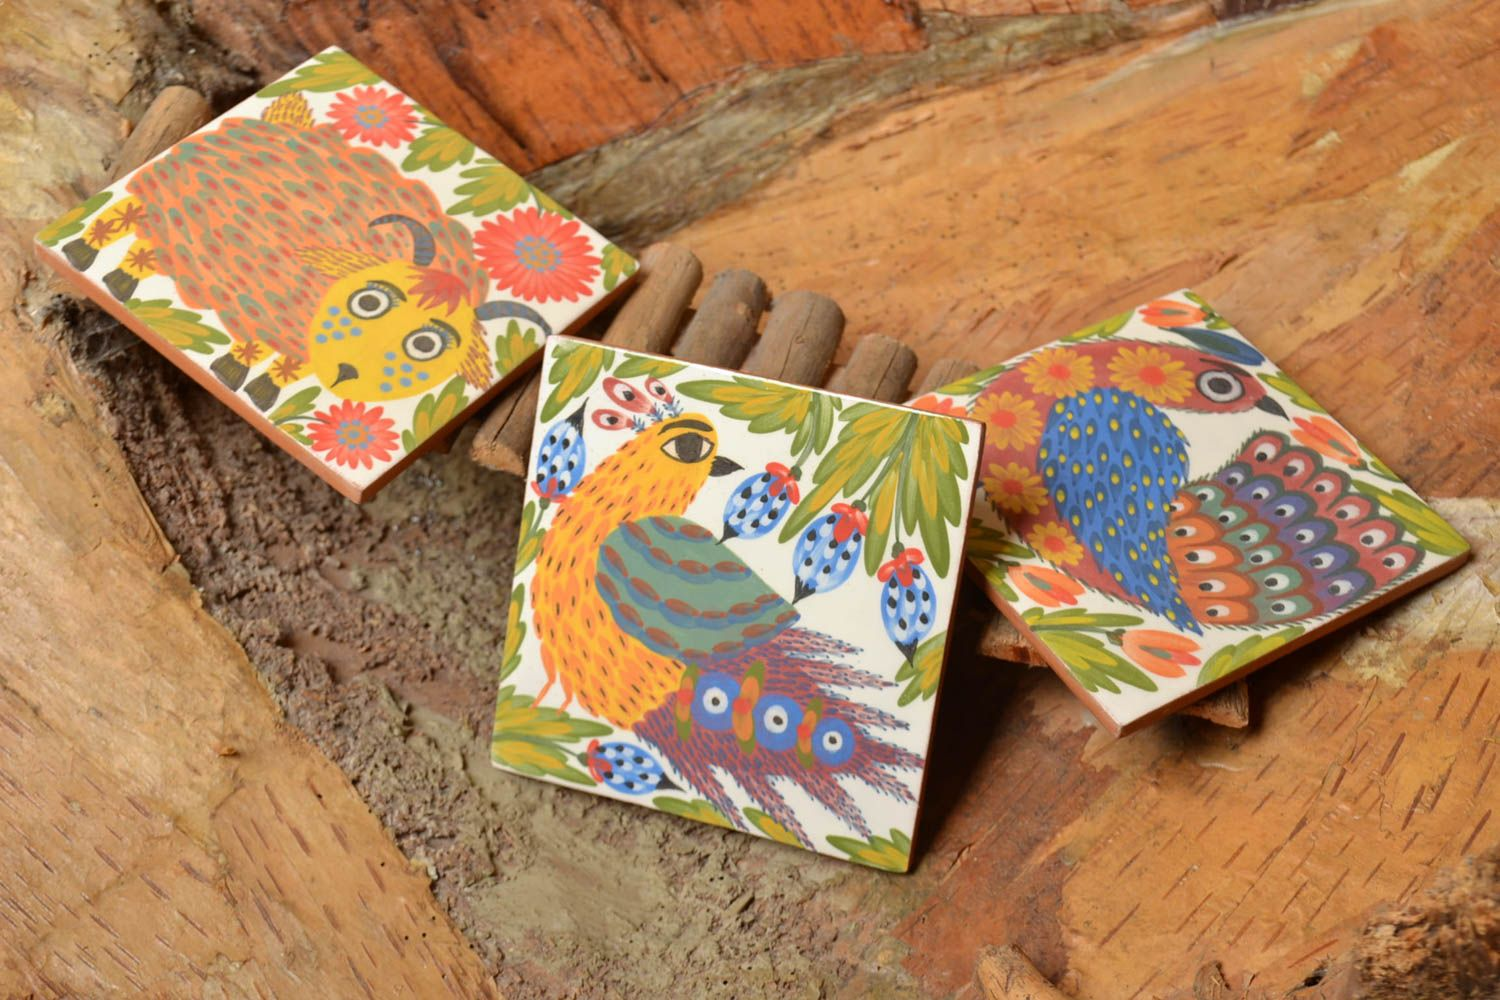 decorative handmade tiles Set of 3 handmade ceramic tiles painted with engobes eco friendly wall panels - MADEheart.com